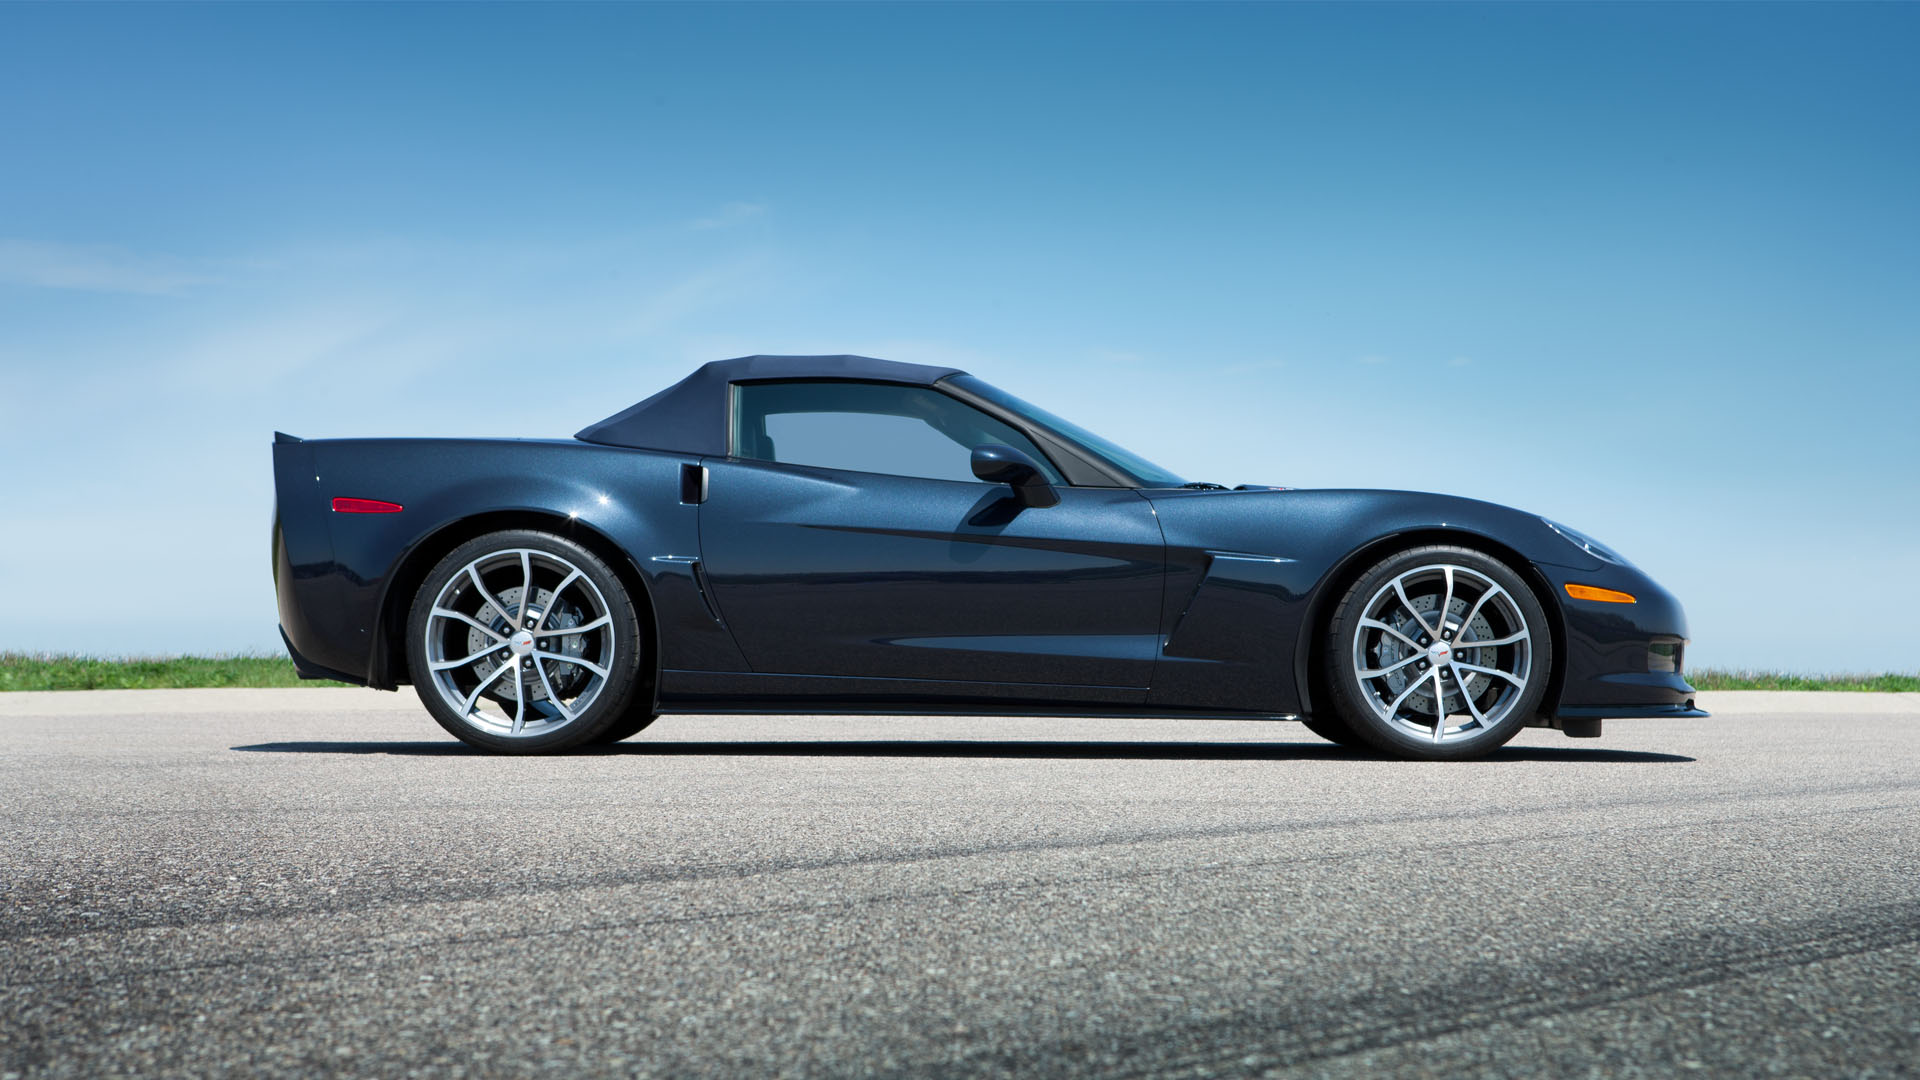 2013 chevrolet corvette 427 convertible car photos. Black Bedroom Furniture Sets. Home Design Ideas